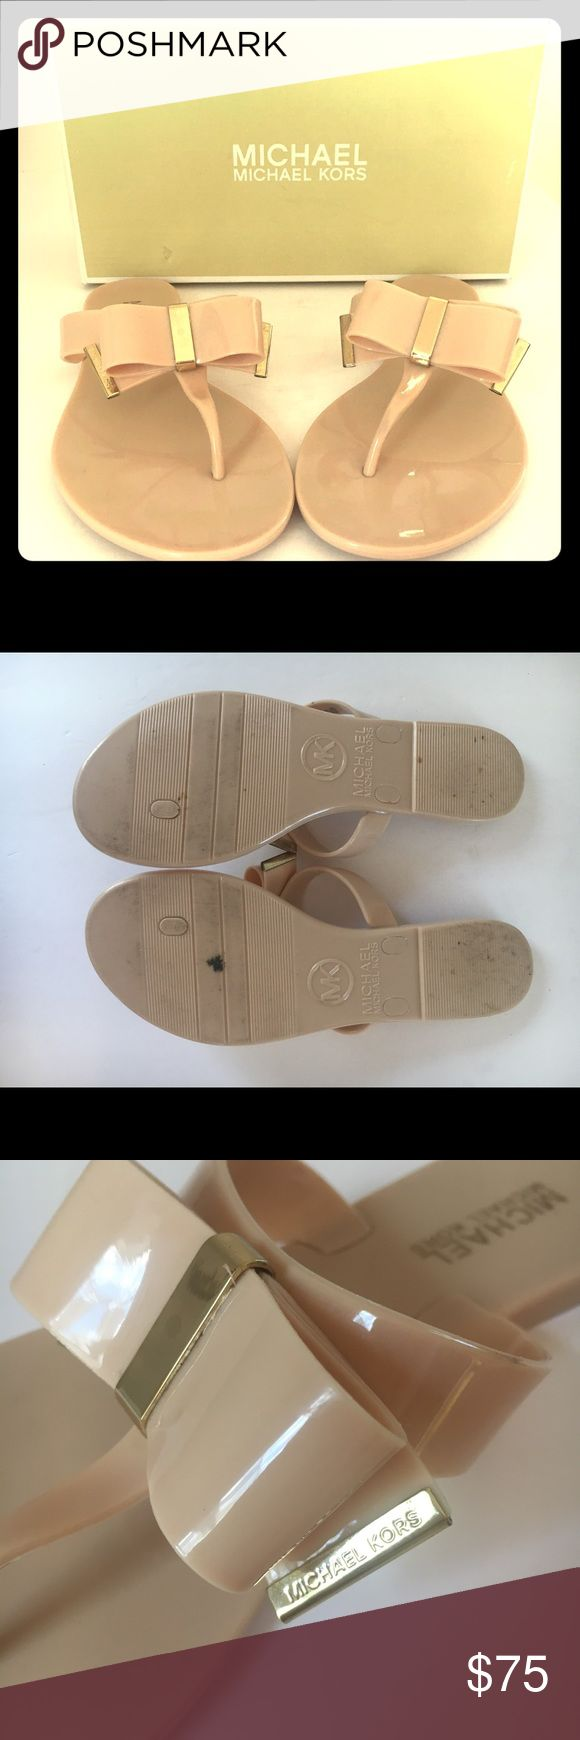 Michael Kors Kayden Tong Nude Flip Flop Size 7 Classic Michael Kors Kayden Thong Flip Flops size 7. Gently used. I️ wore them once. Box included! Michael Kors Shoes Sandals